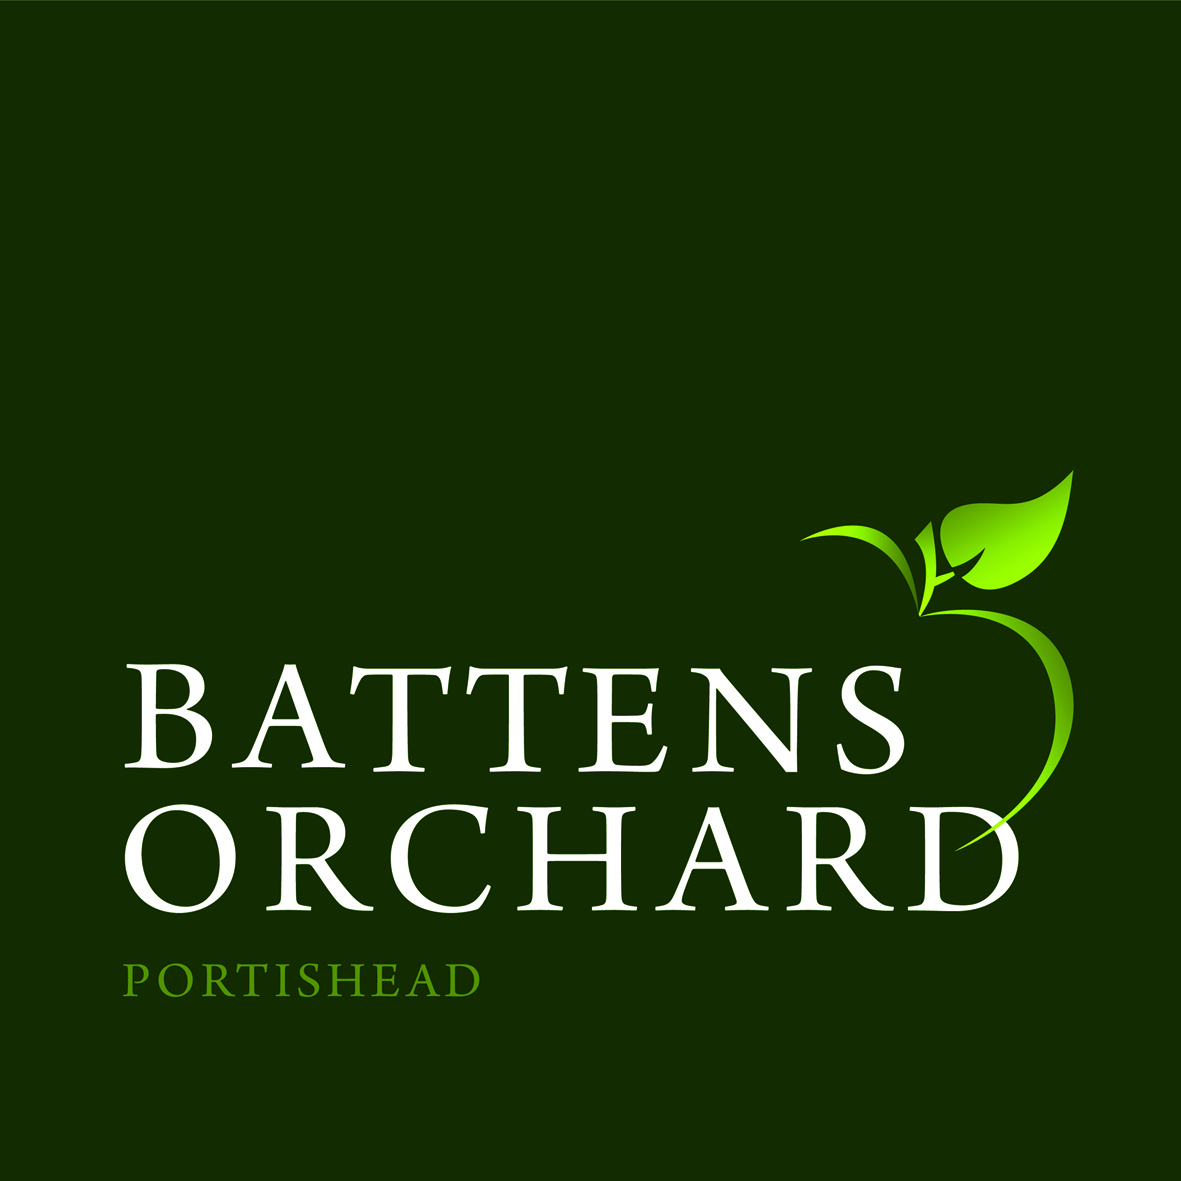 Battens Orchard